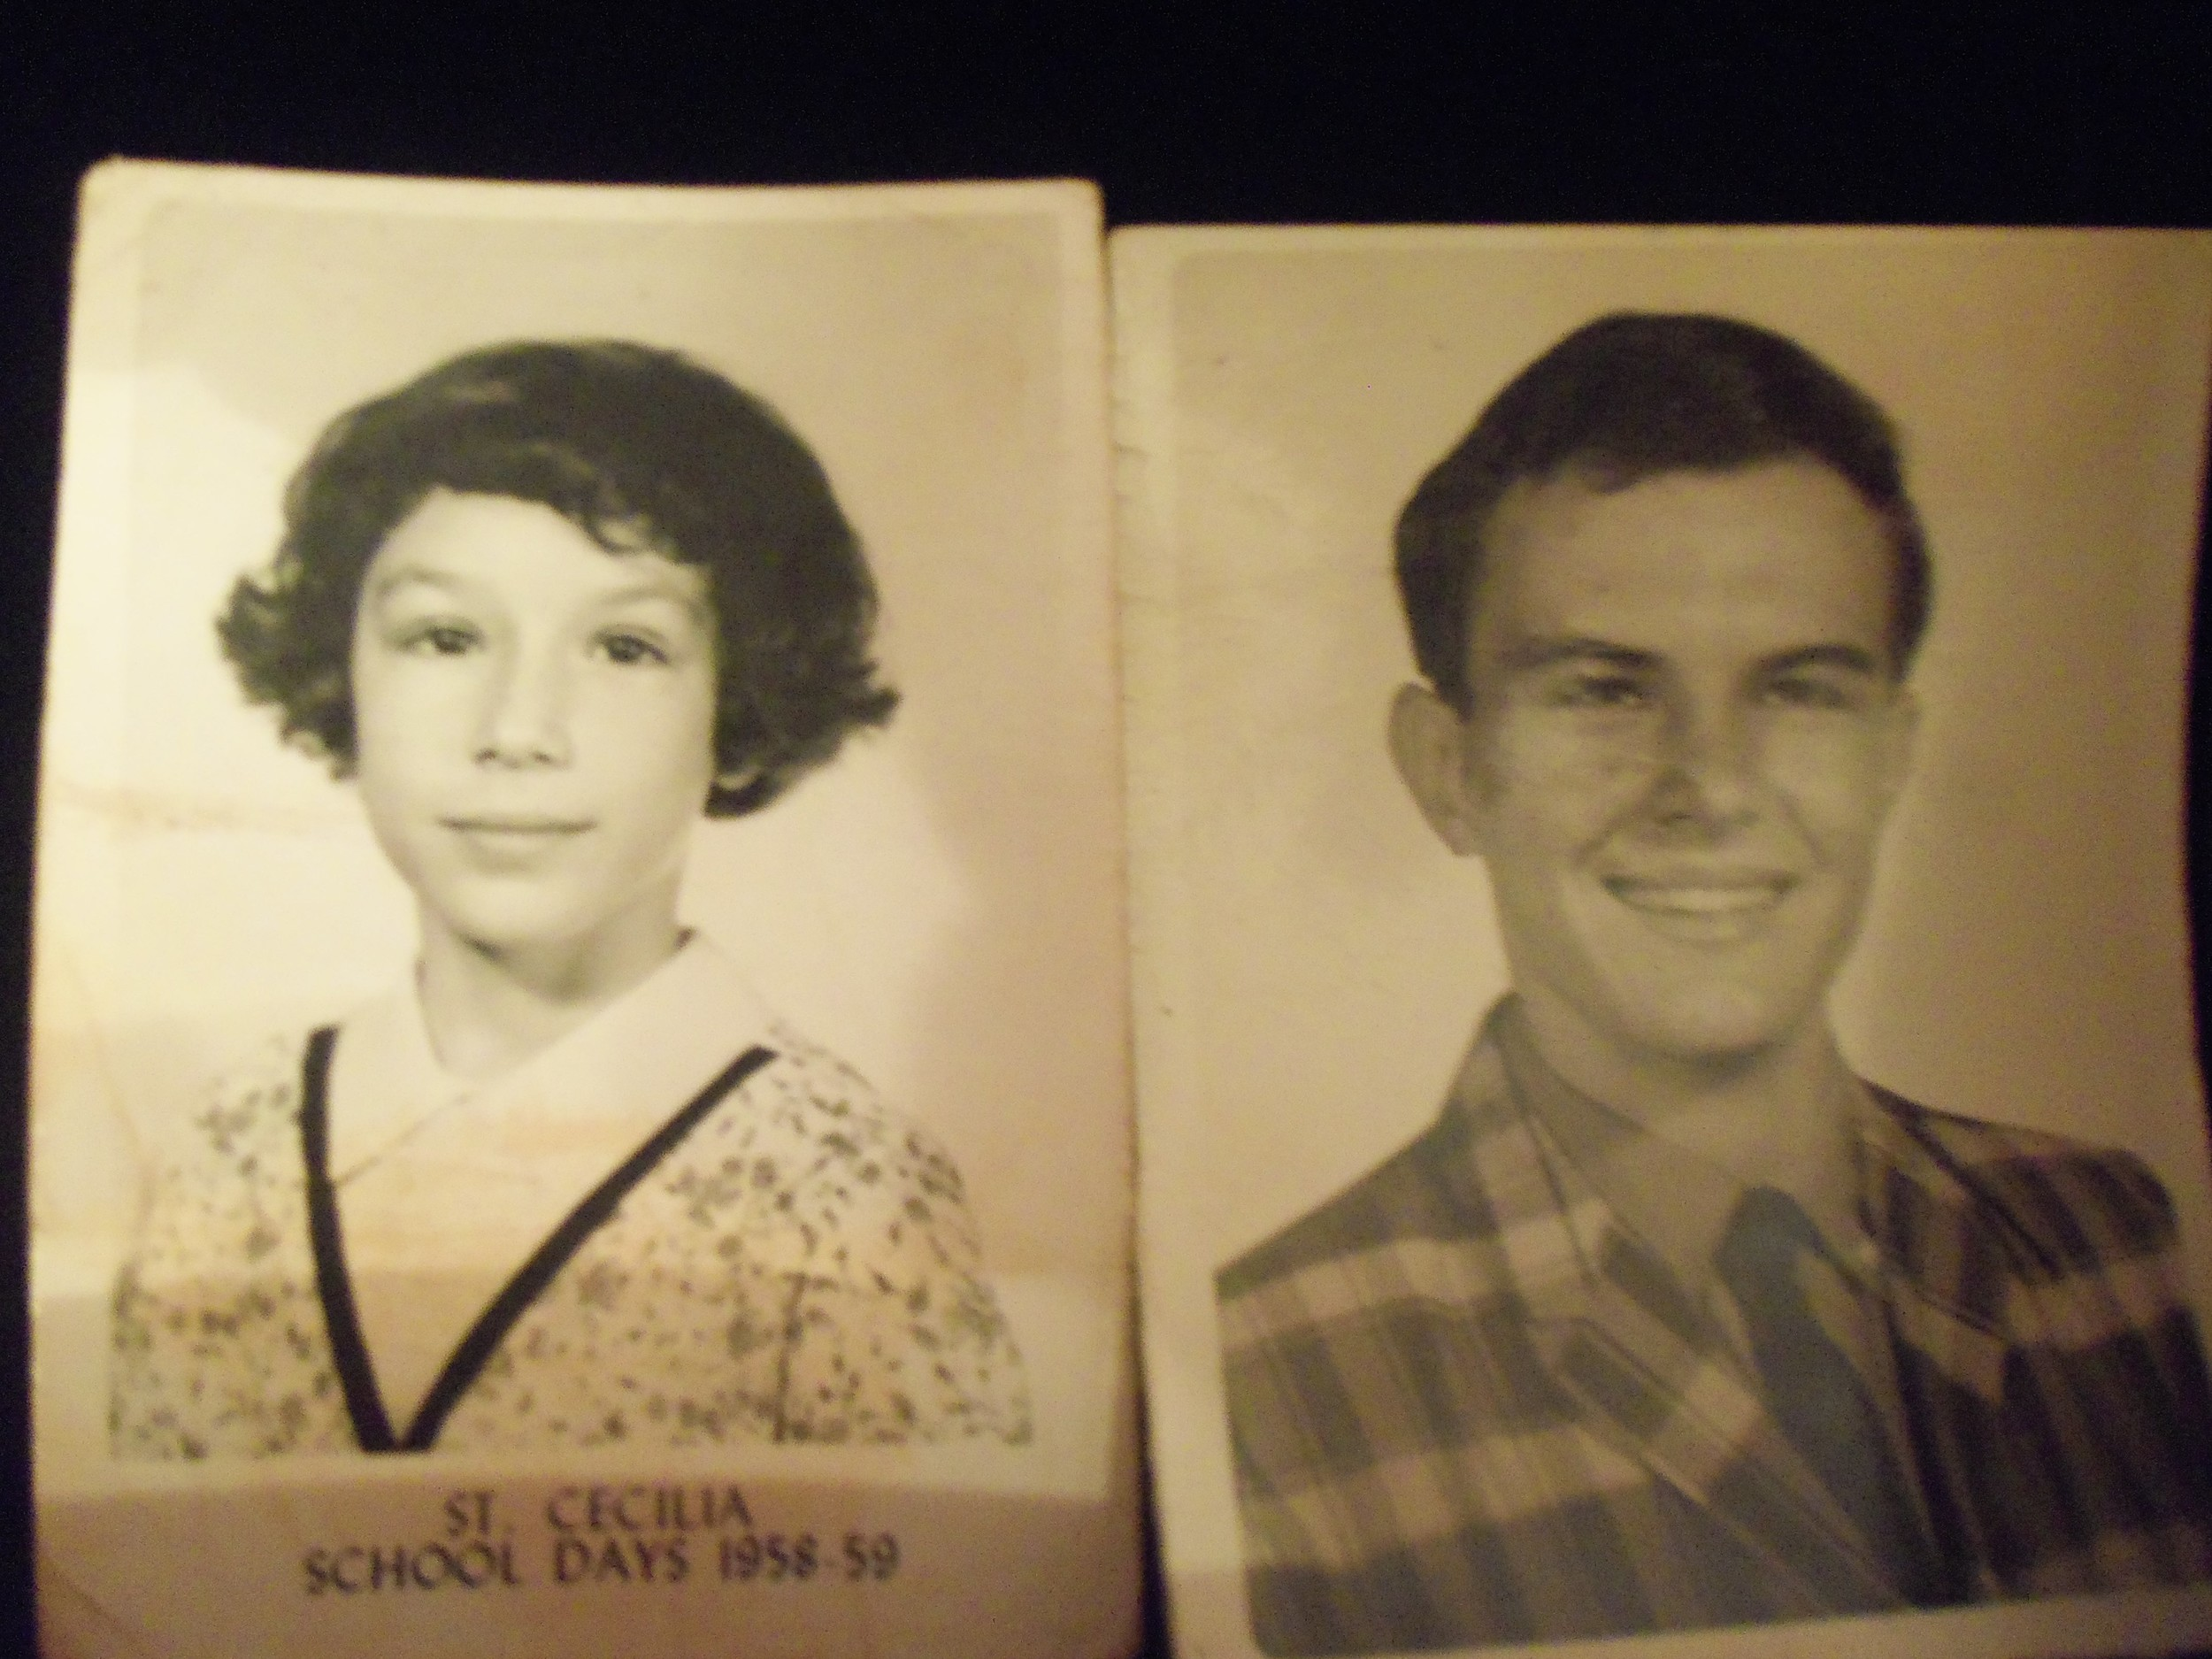 SHELIA SCHUTTE MY COUSIN  HER BROTHER MY COUSIN FRITZY FRED SCHUTTE